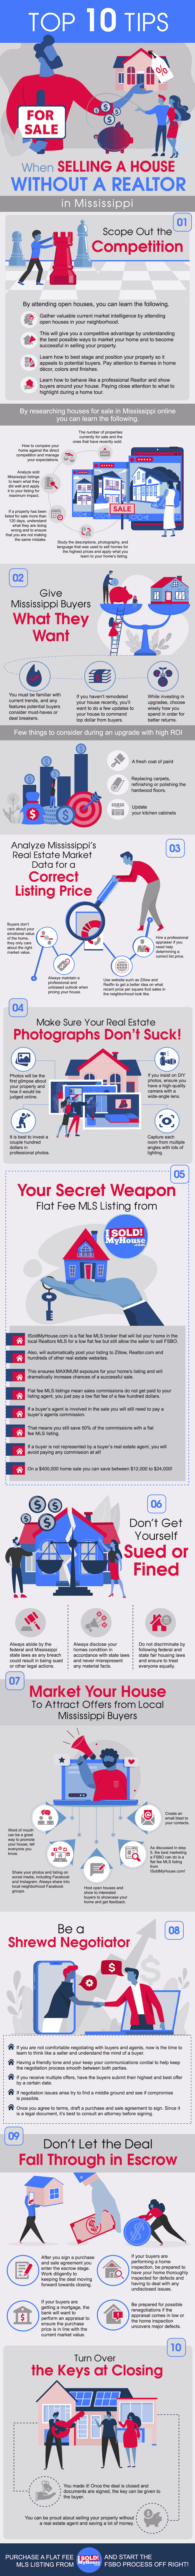 infographic of the 10 steps to sell a house in mississippi without an agent